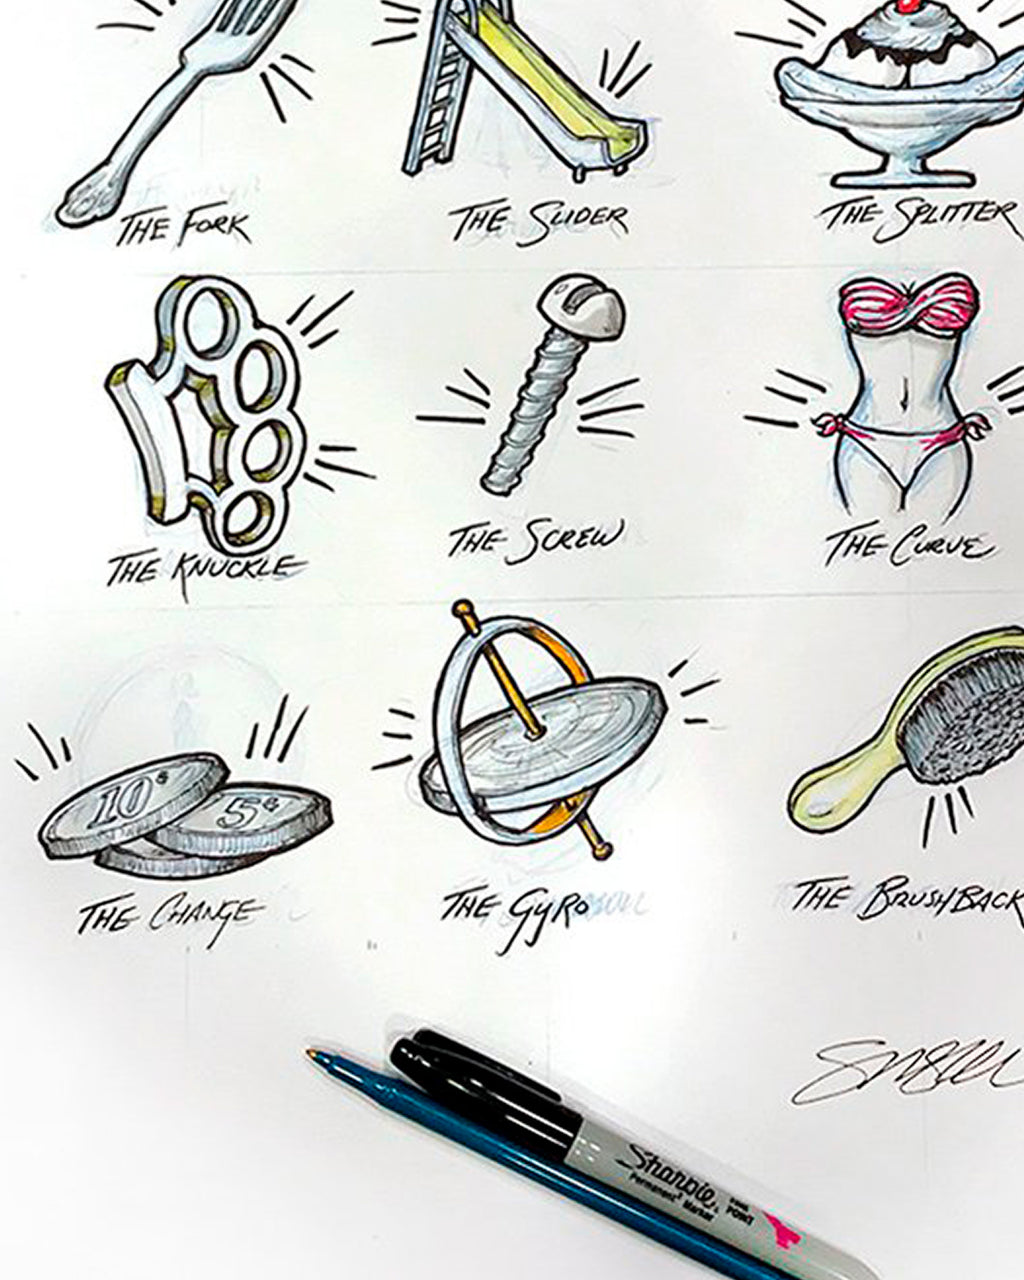 Pitching Metaphors Sketch - Original Sketch